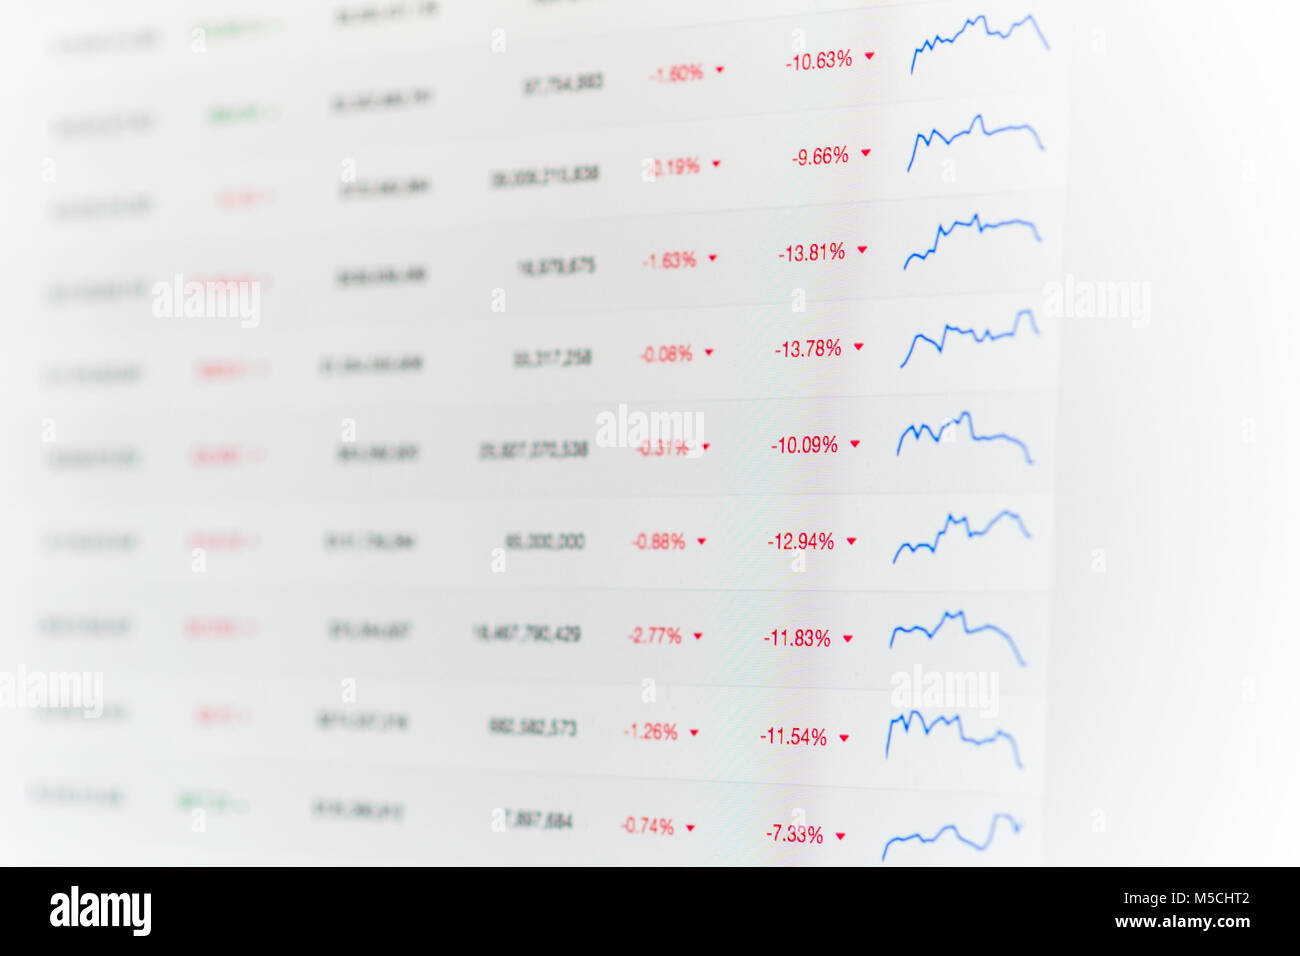 Percents and charts showing global cryptocurrency market decline with prices going lower - Stock Image